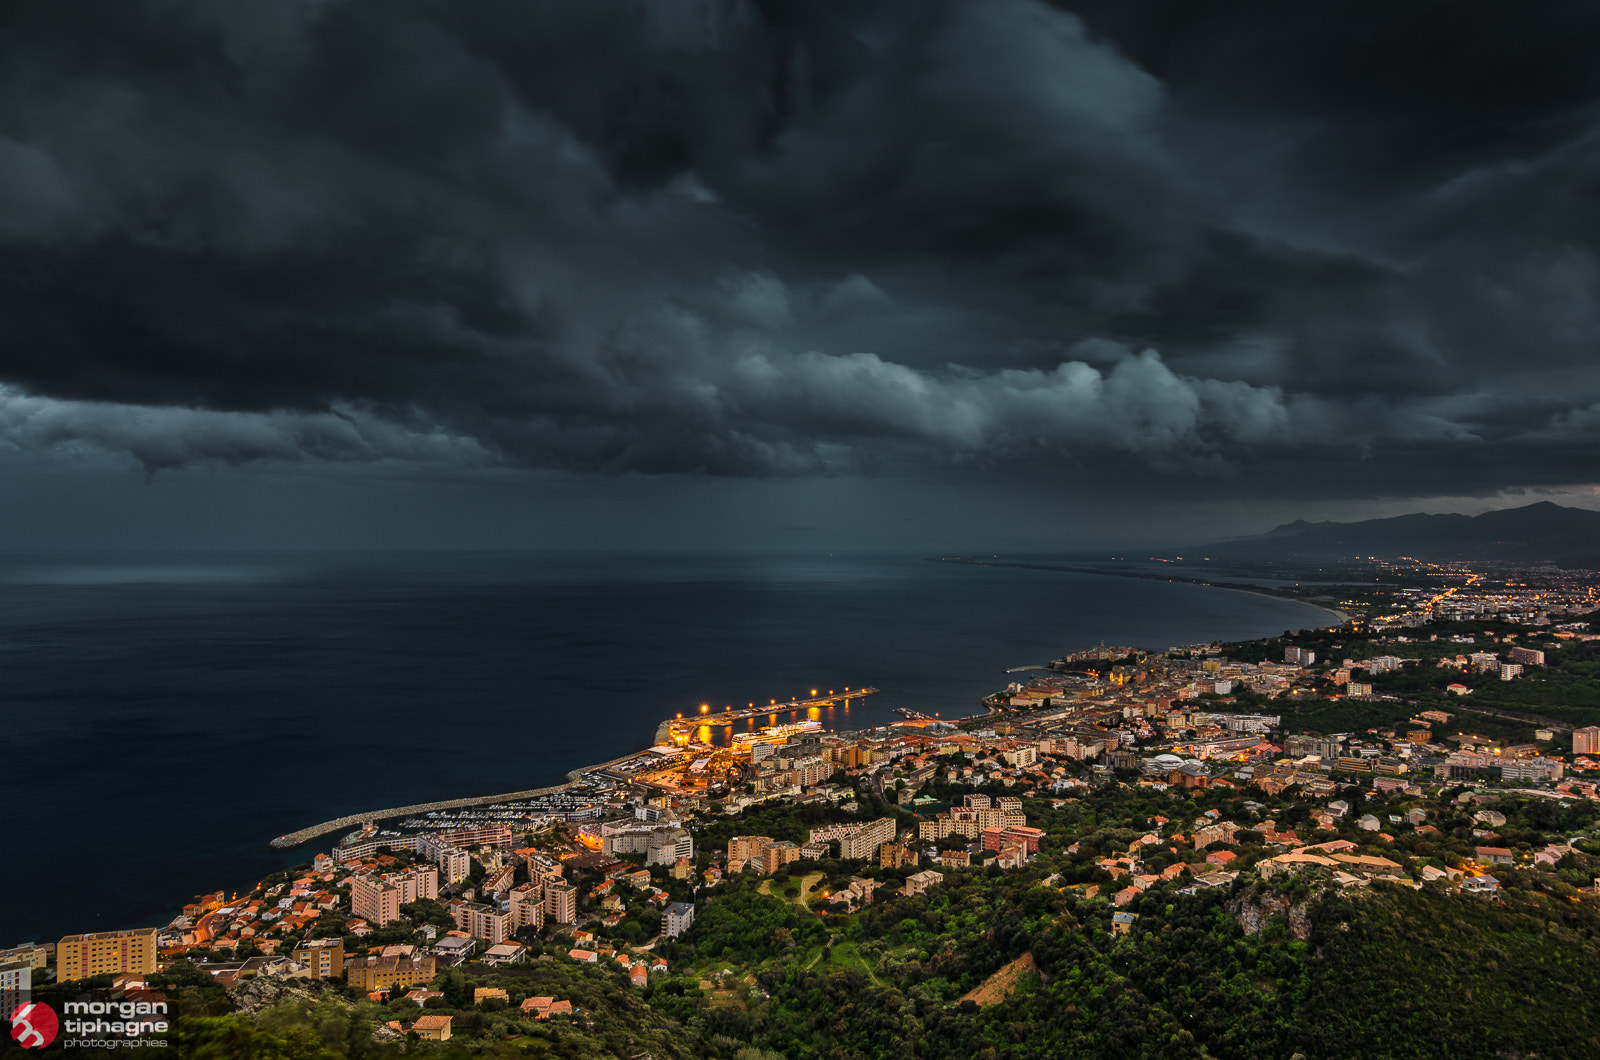 Photograph Night is coming on Bastia by Morgan Tiphagne on 500px